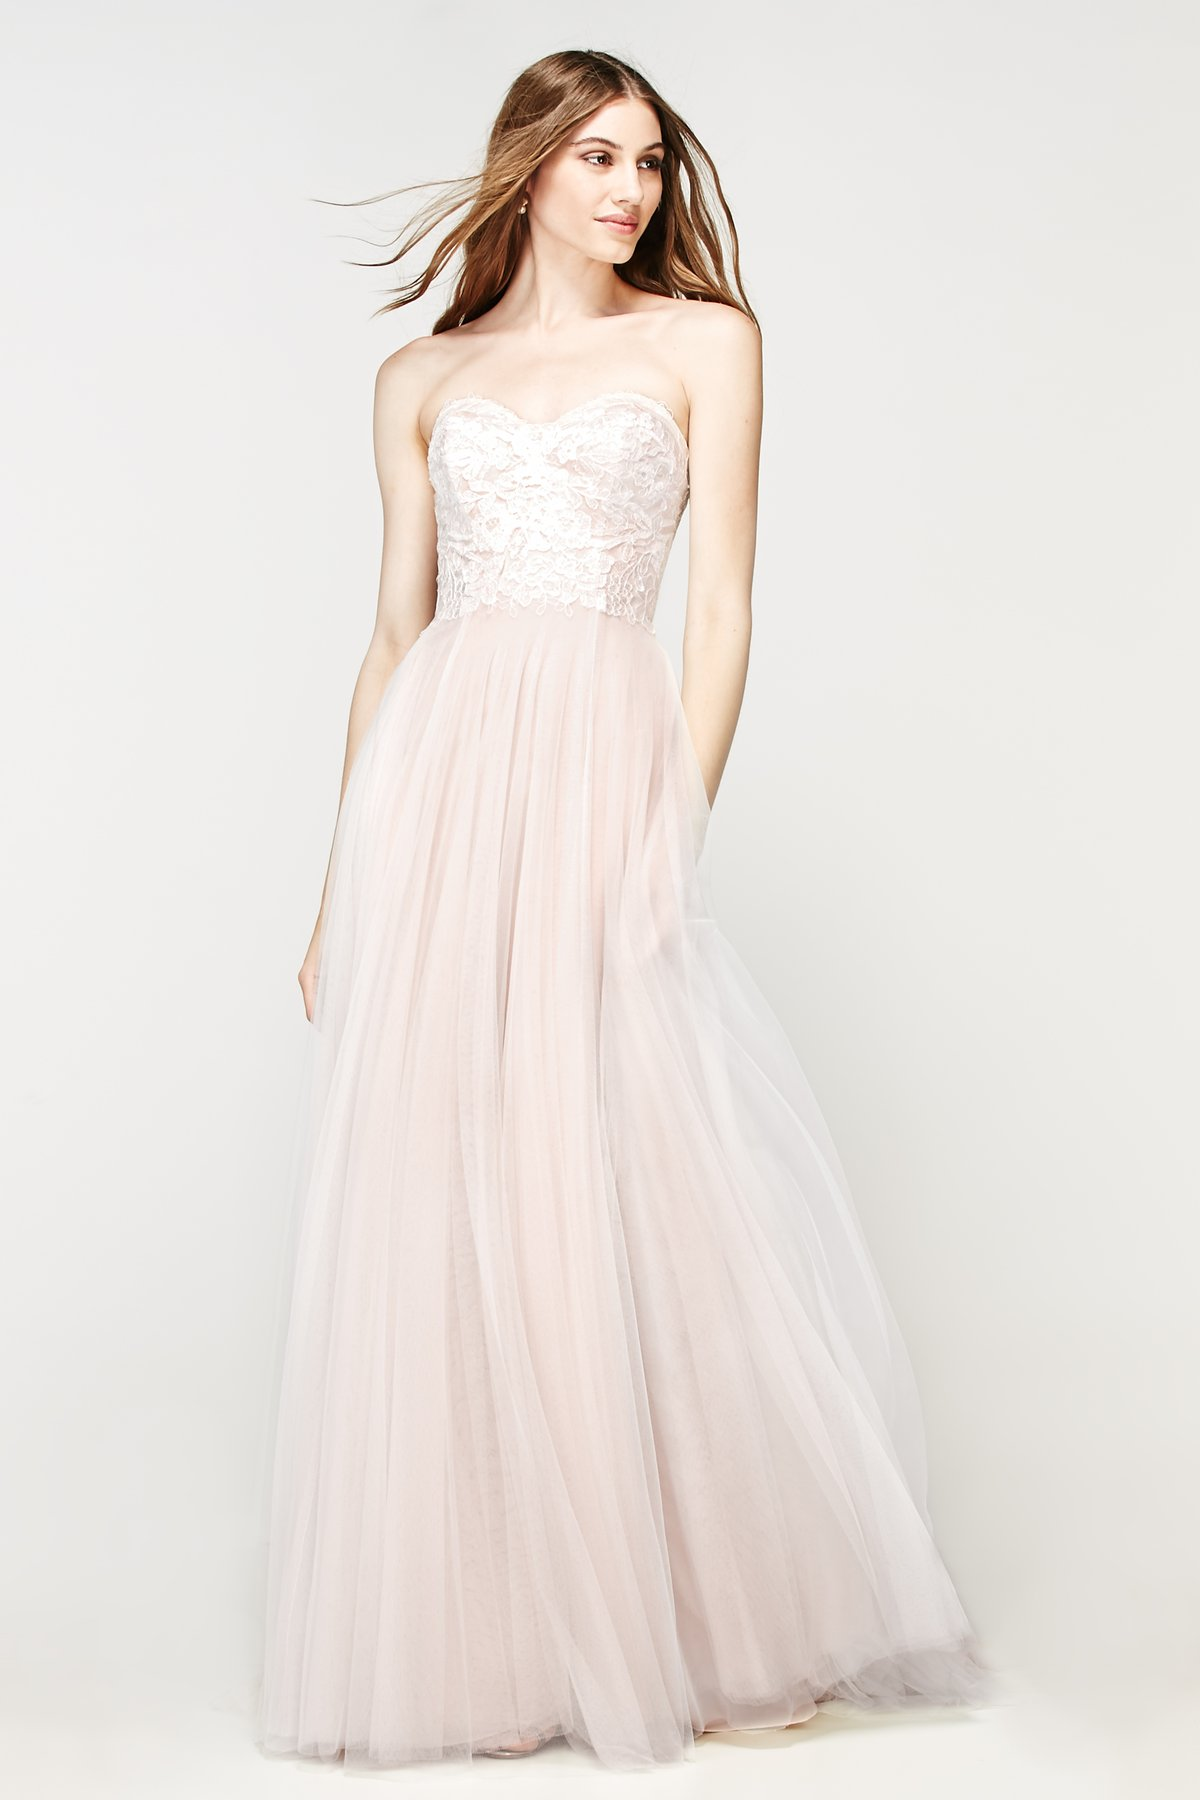 Rorain 56724 | Willowby Brides | Willowby